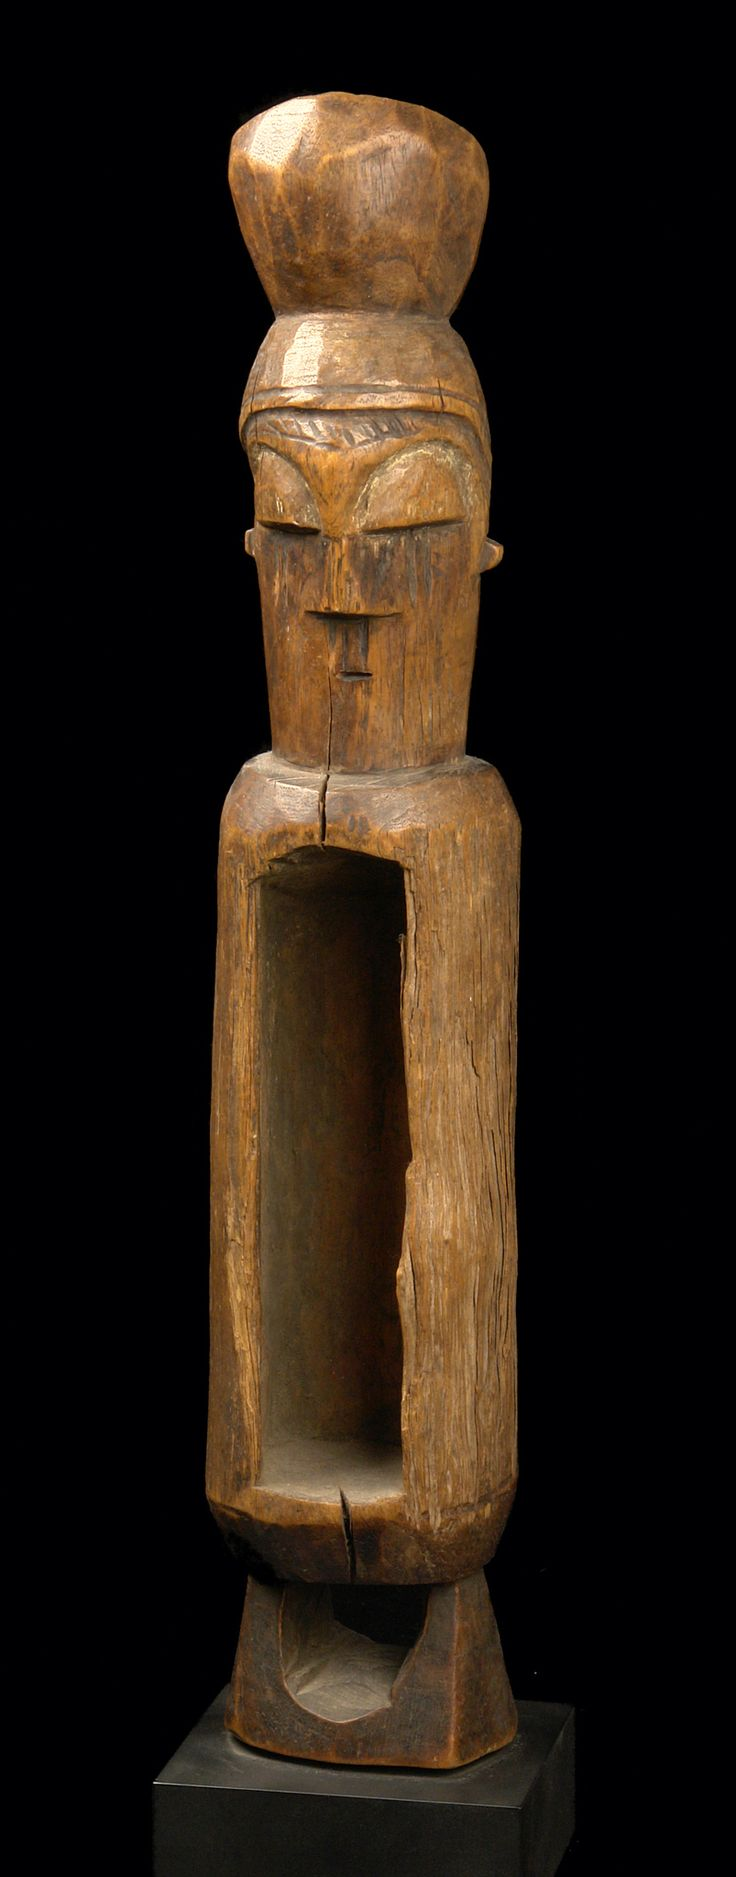 Africa | Slit drum from the Yaka people of DR Congo | Wood with middle brown patina and remains of pigment